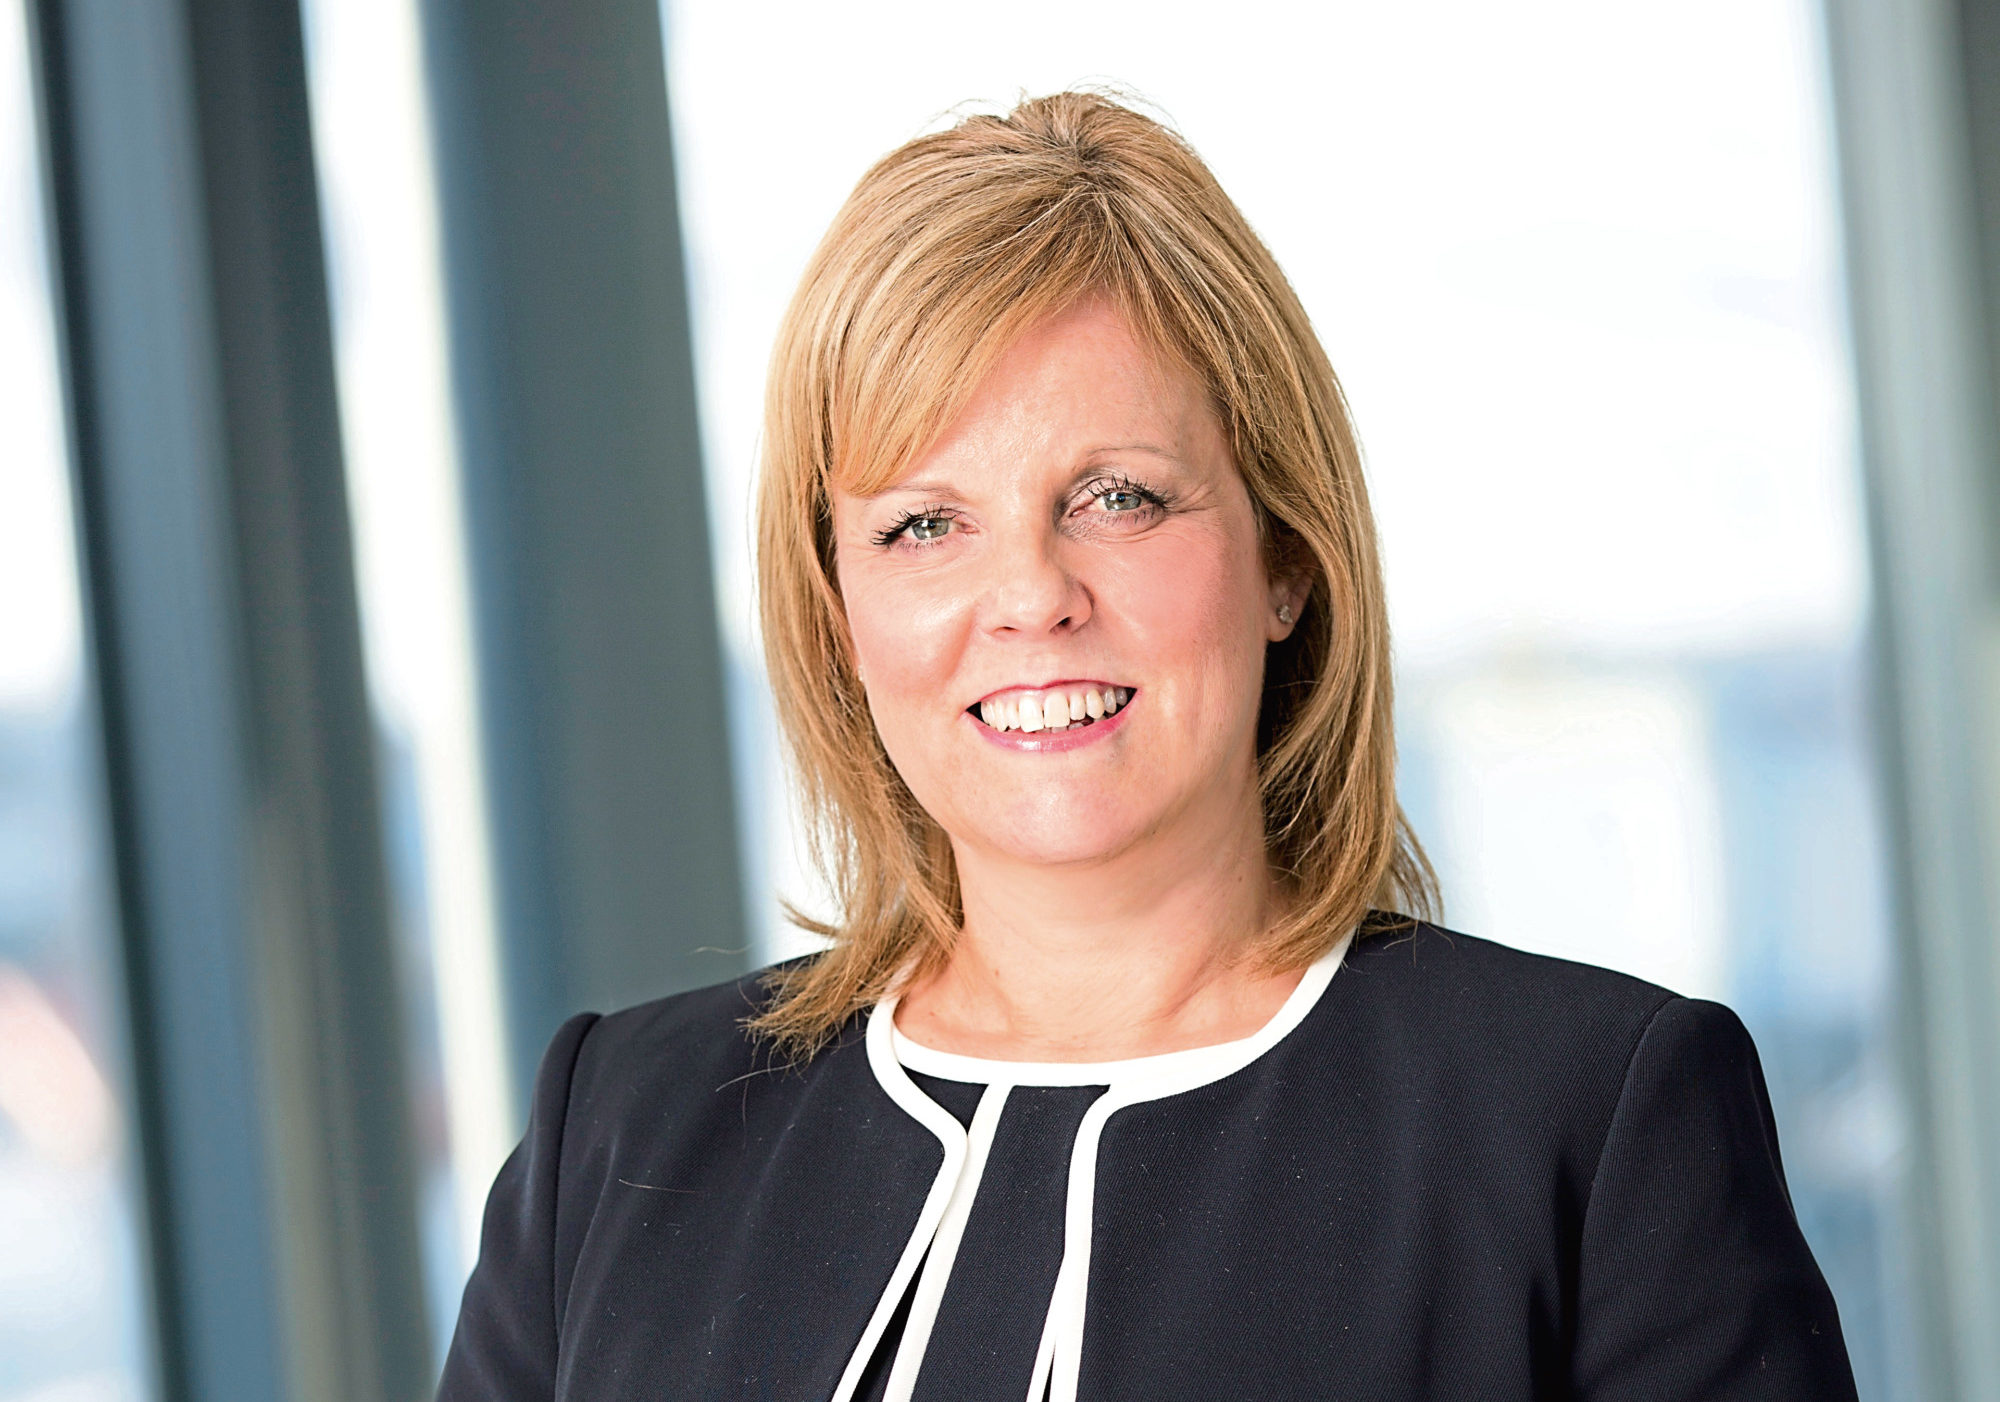 Chief executive of Aberdeen Harbour Board, Michelle Handforth.